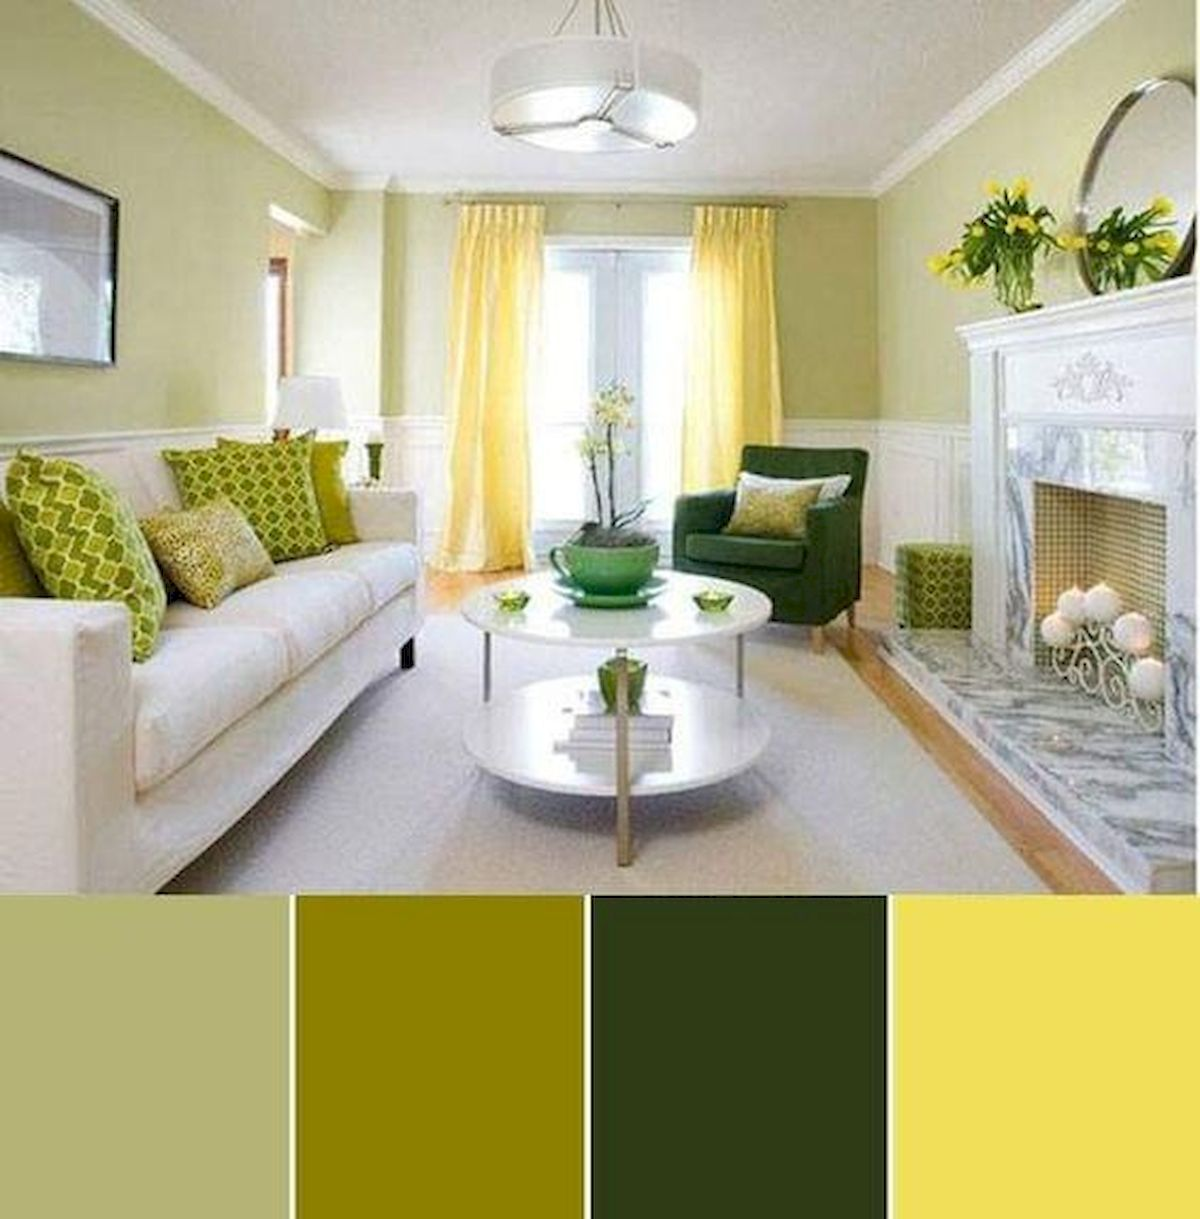 40 Gorgeous Living Room Color Schemes Ideas - house8055.com